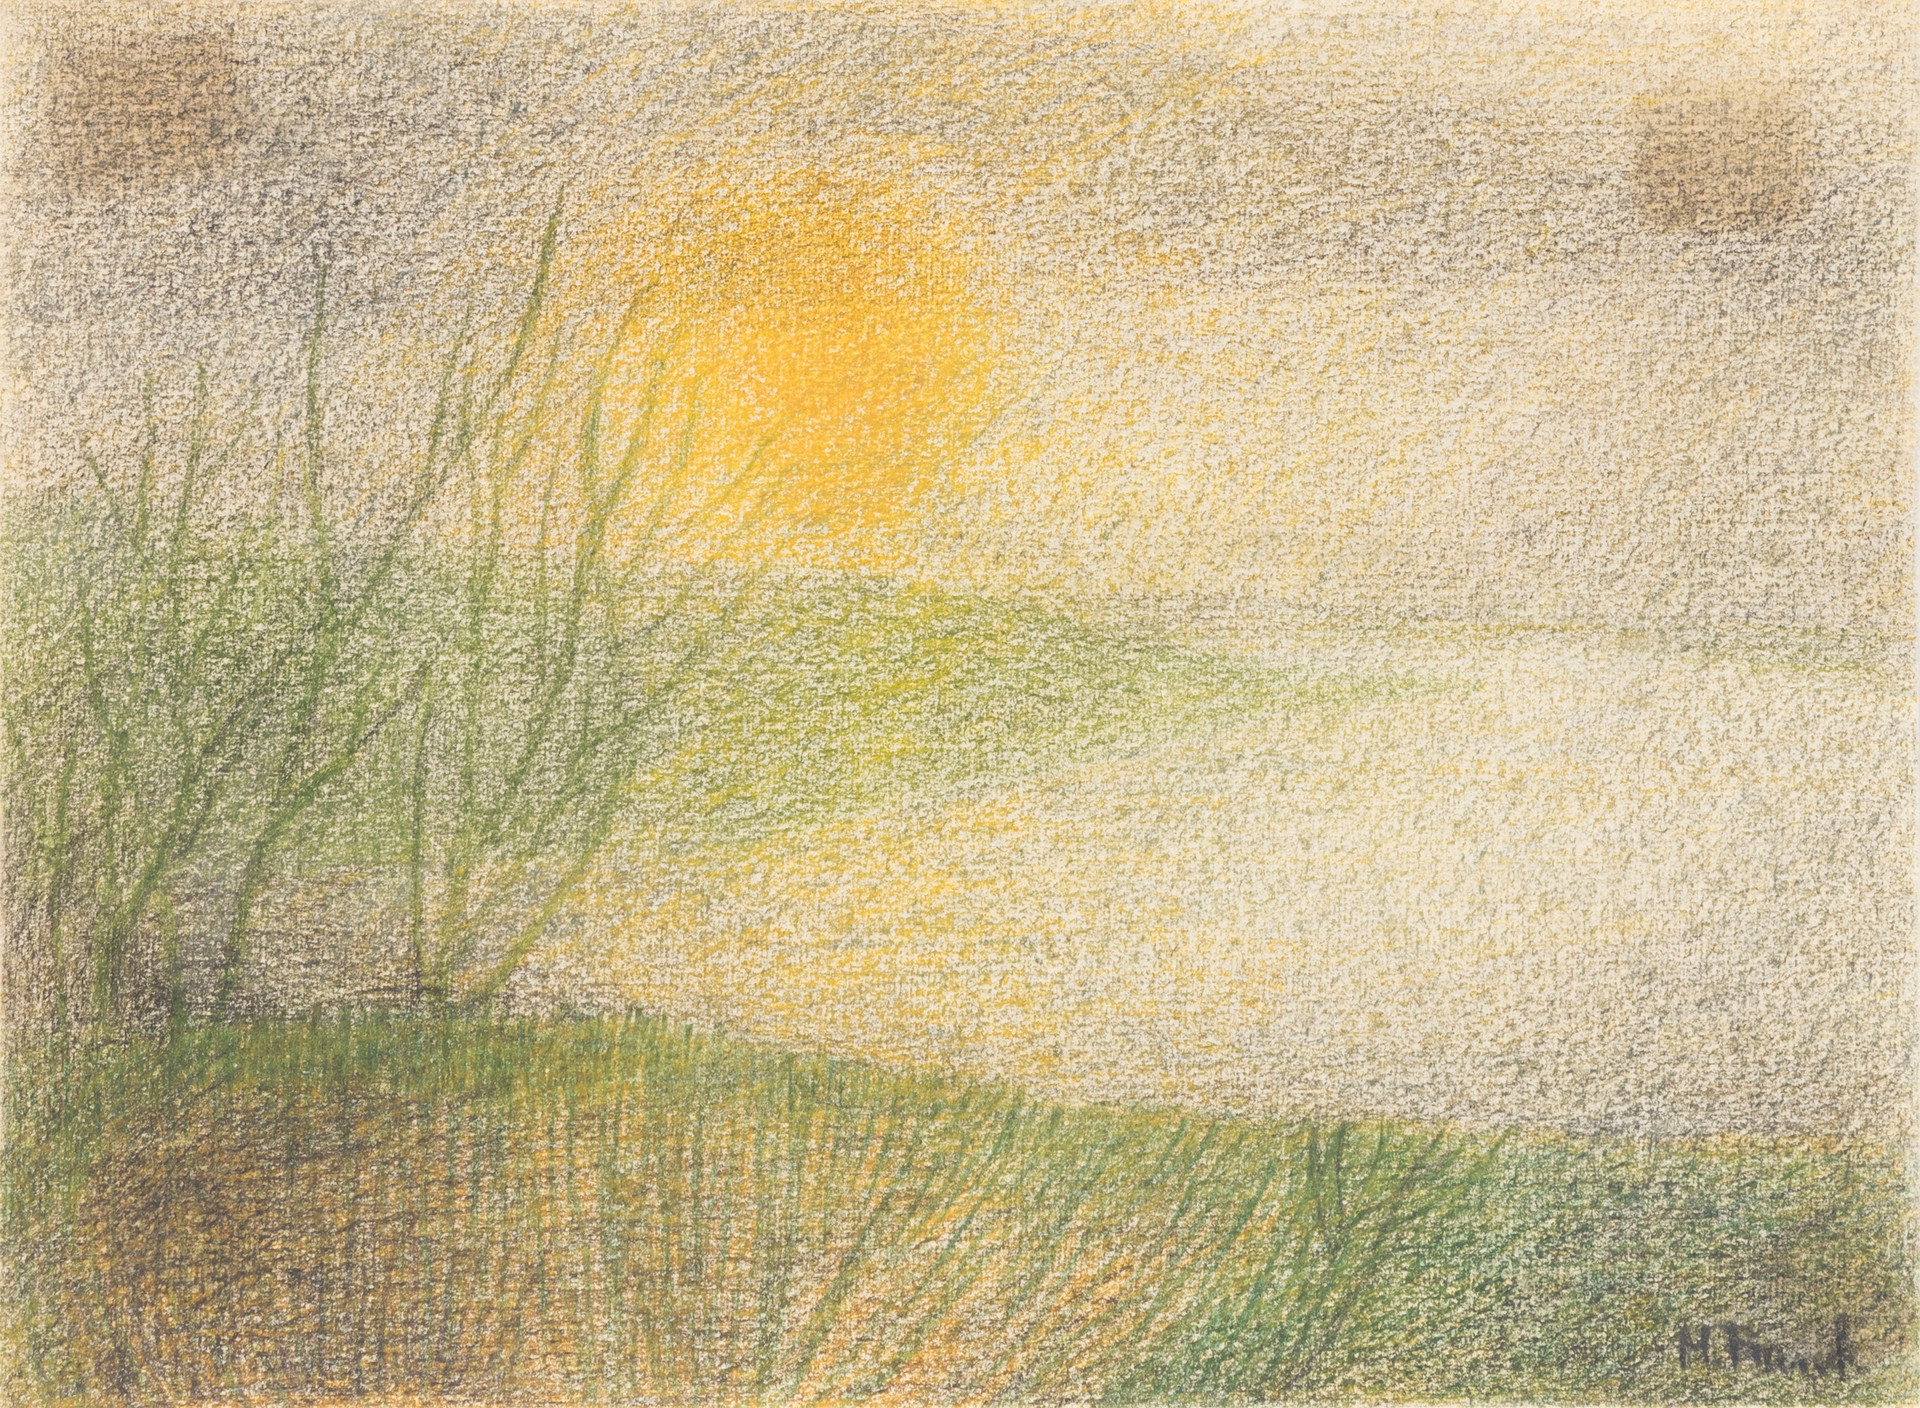 Untitled - sunset next to water and green field